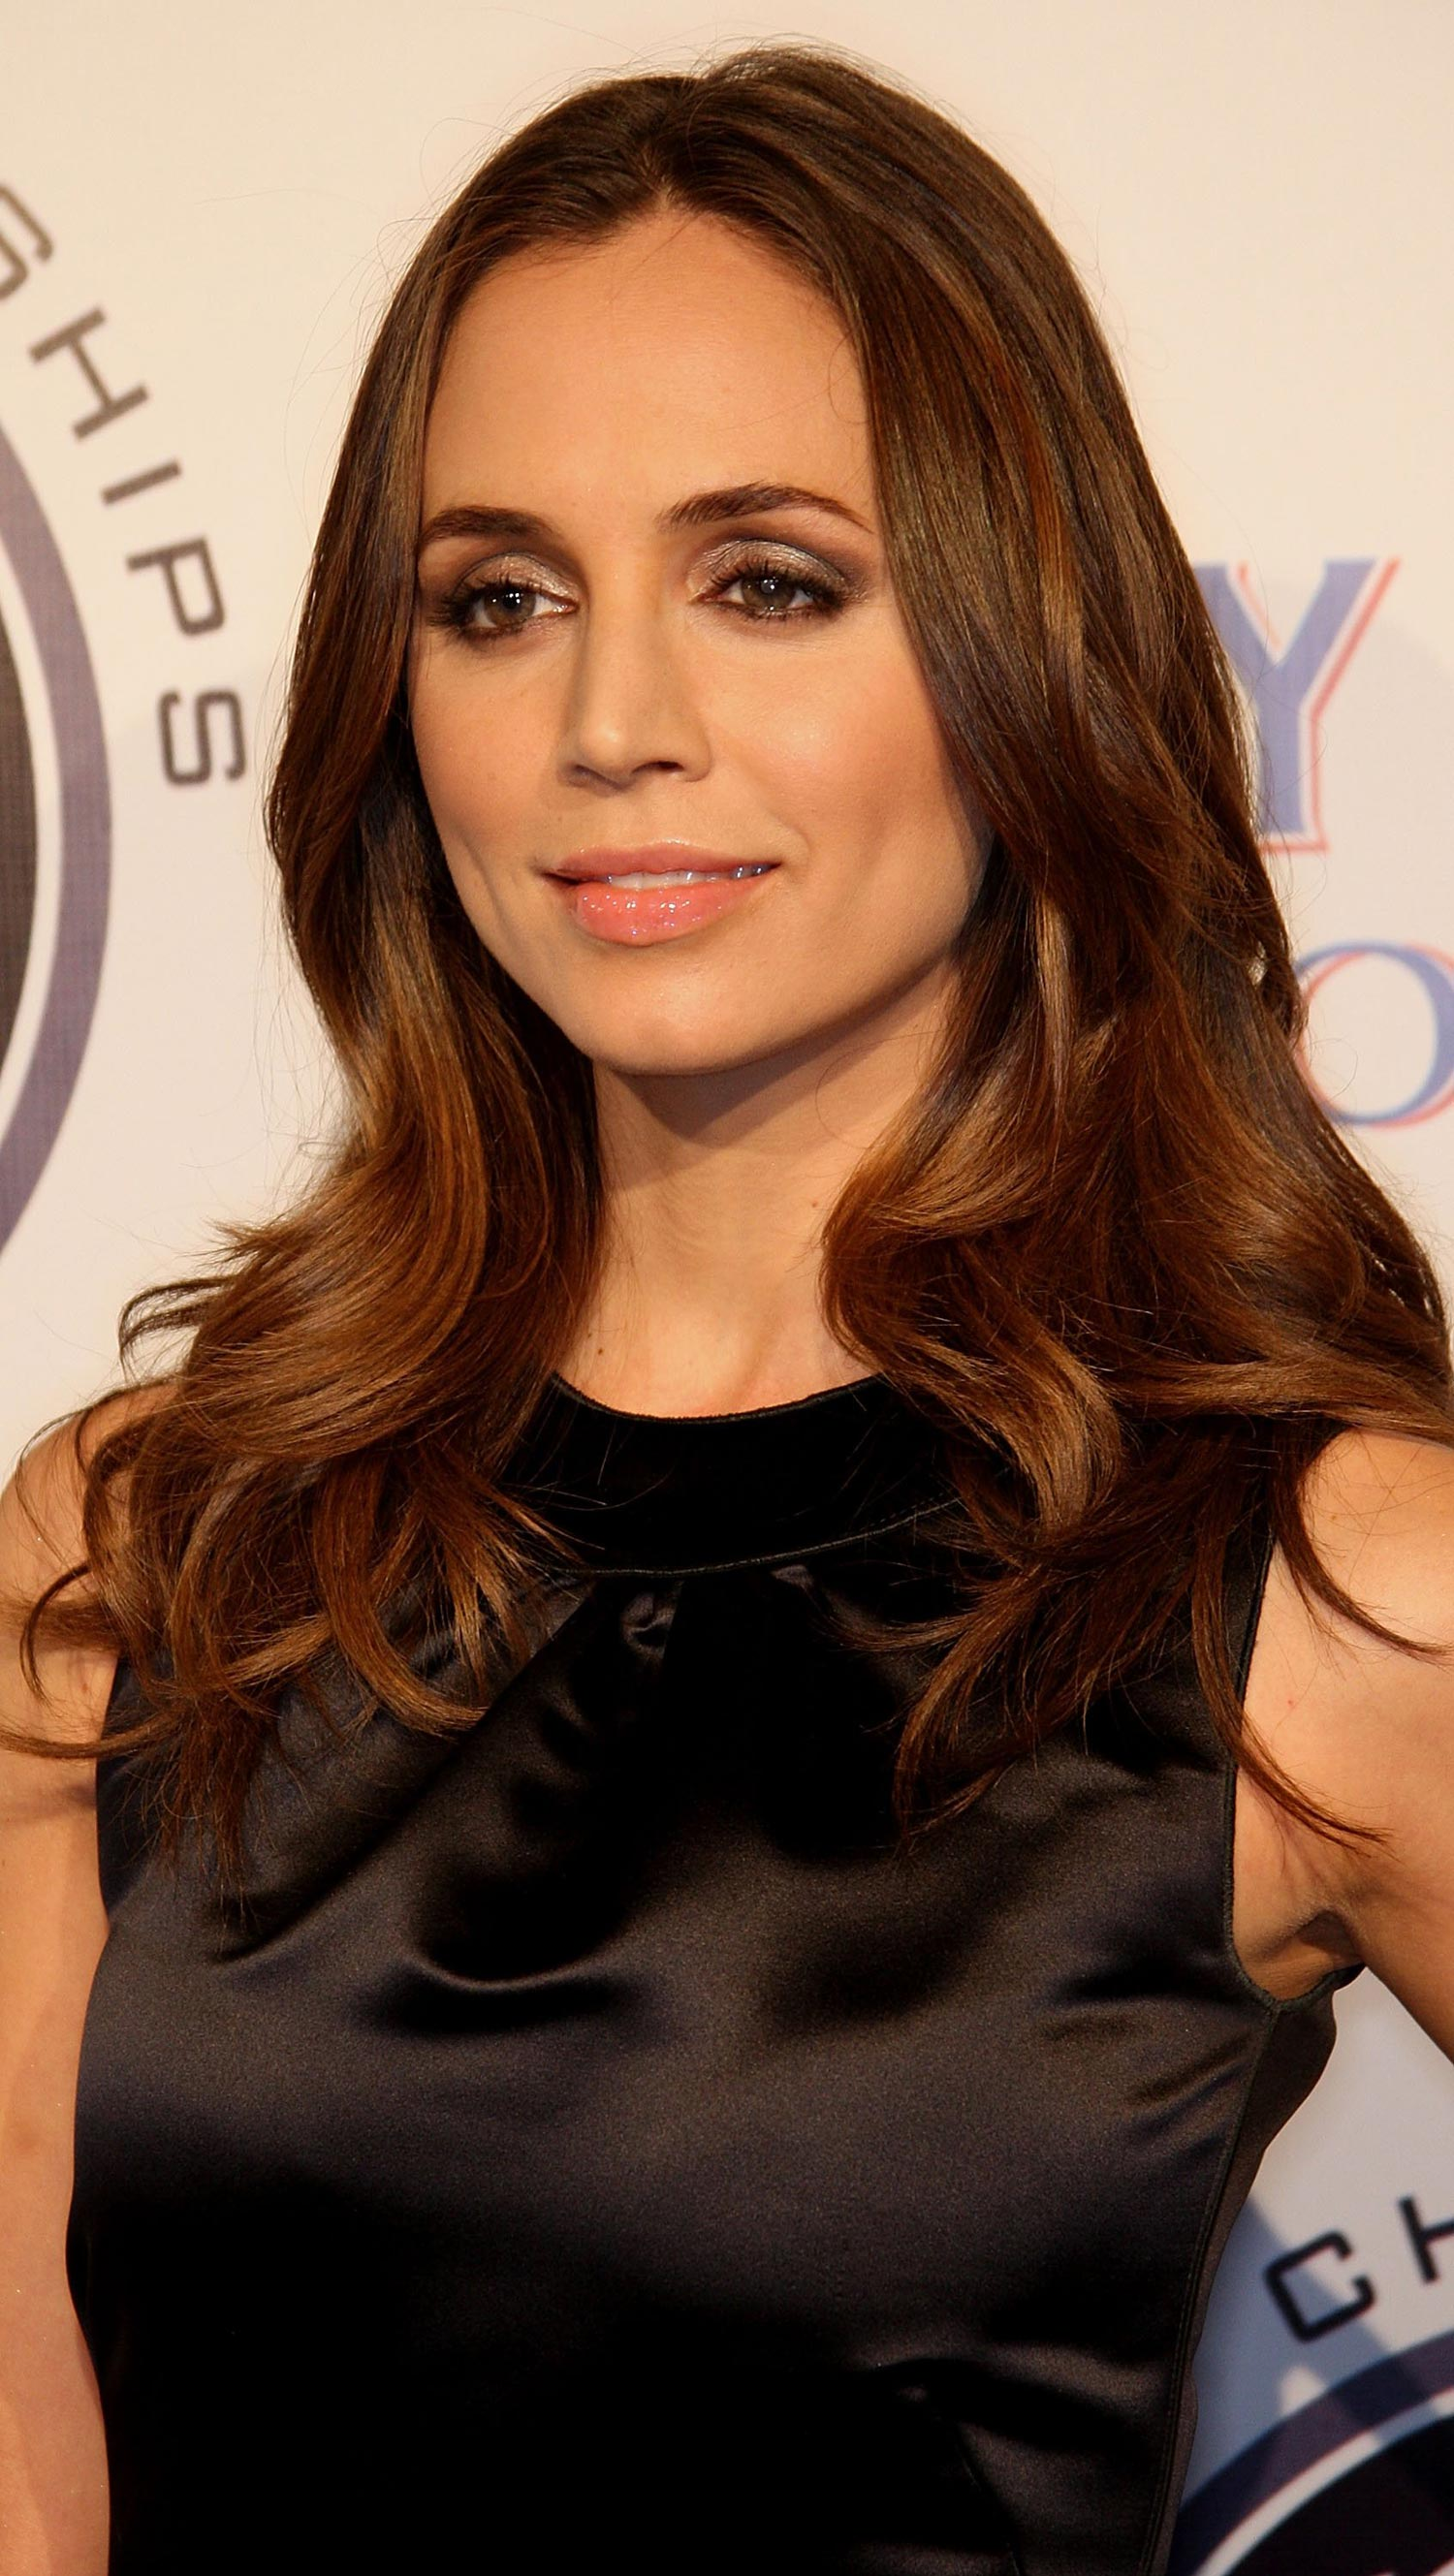 ... IMG/jpg/eliza-dushku-breeders-cup-winner-circle- ... - eliza-dushku-breeders-cup-winner-circle-event-hq-03